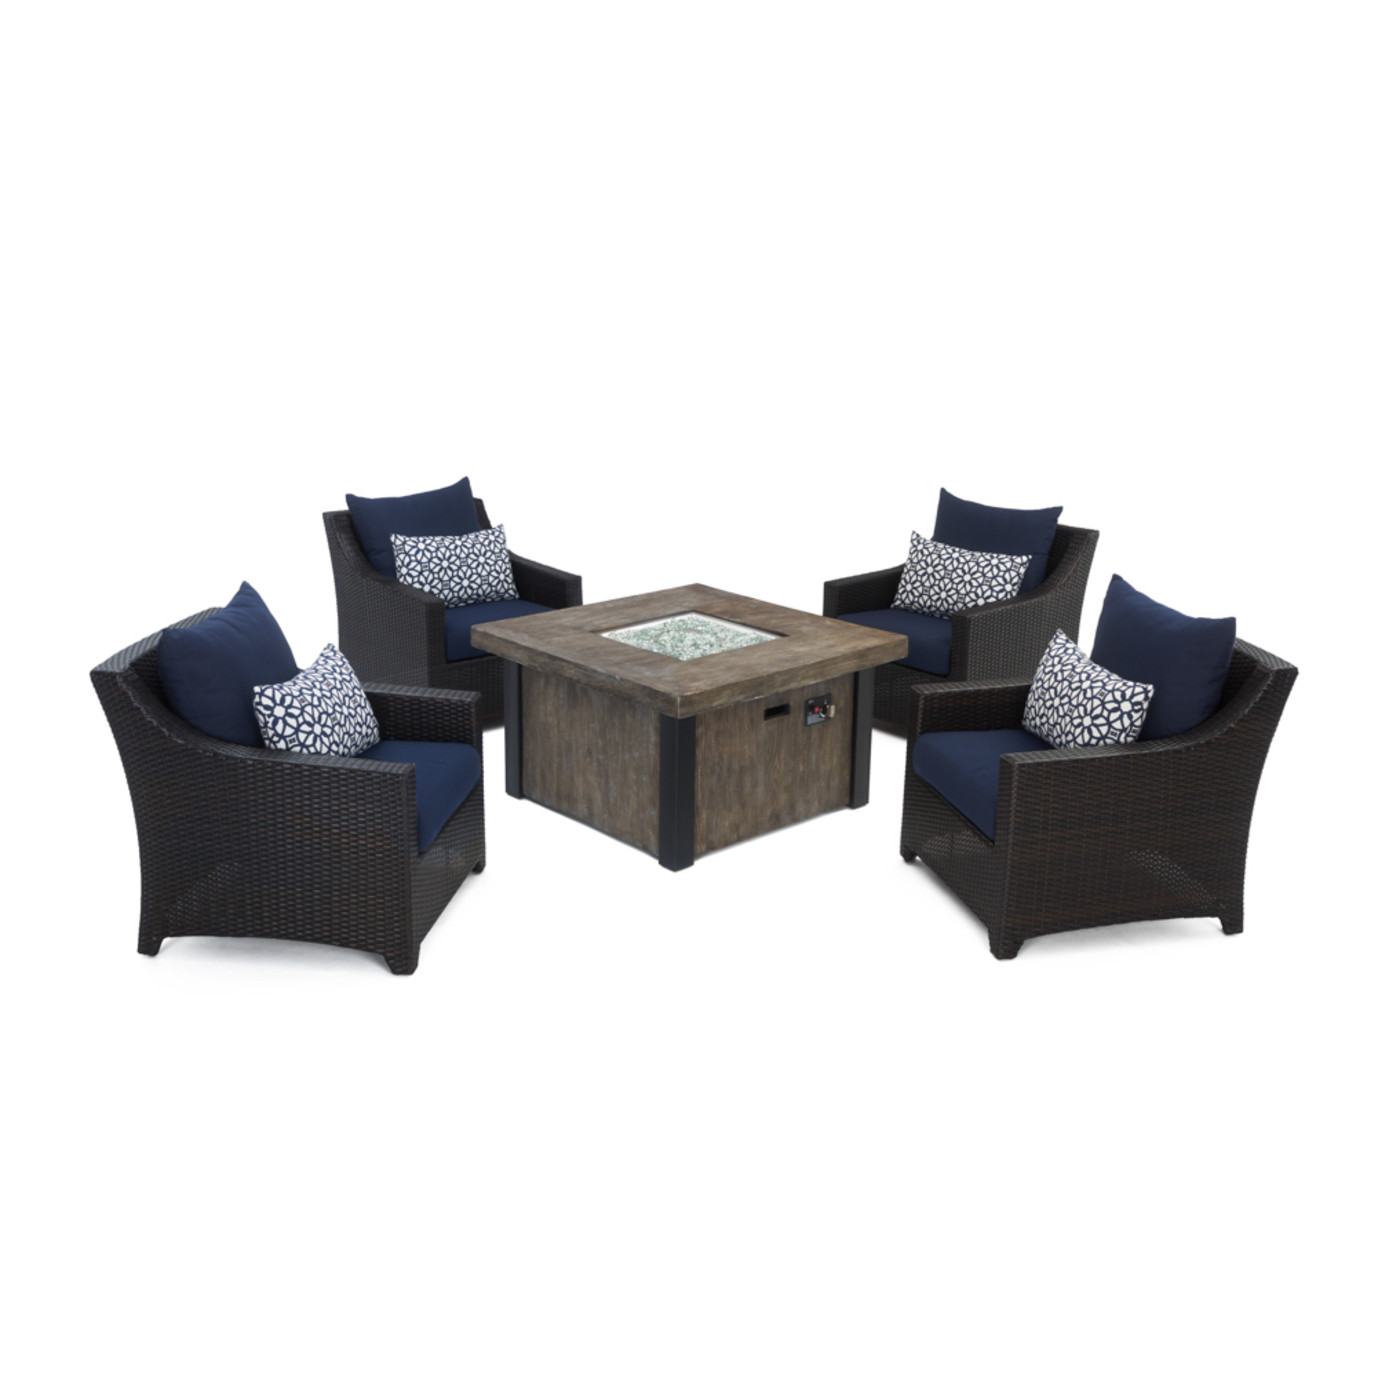 Deco™ 5 Piece Fire Chat Set- Navy Blue